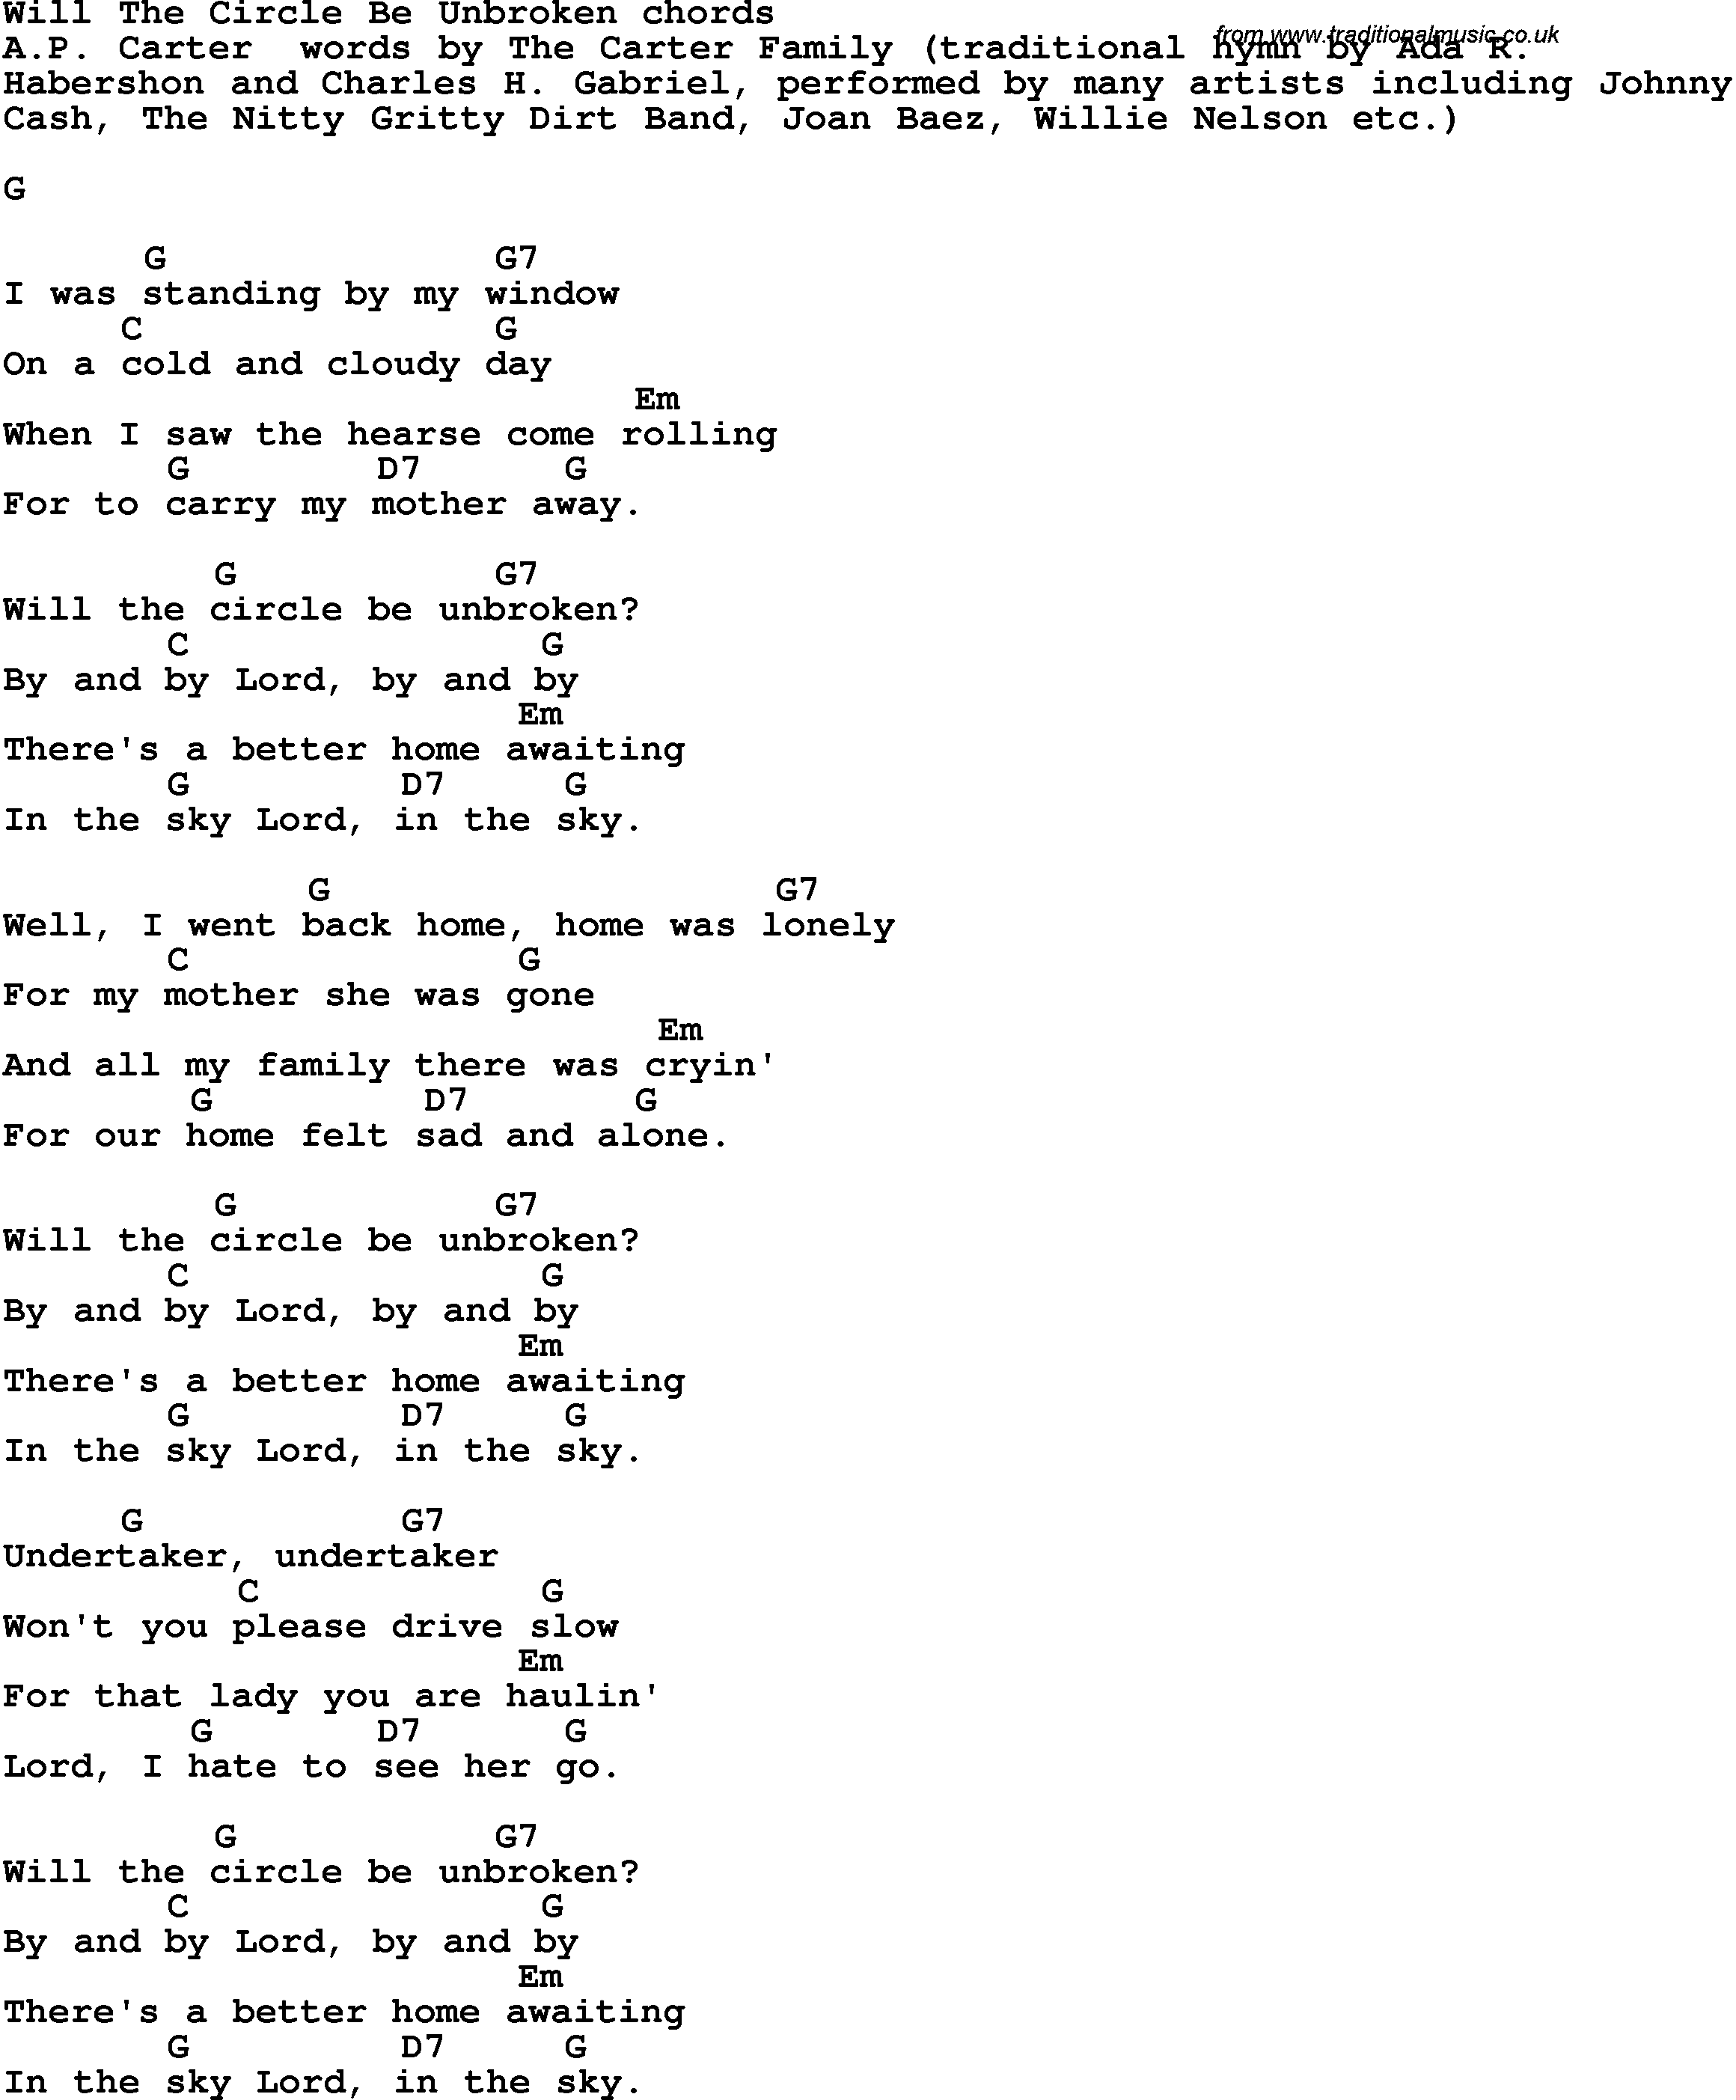 Song Lyrics With Guitar Chords For Will The Circle Be Unbroken